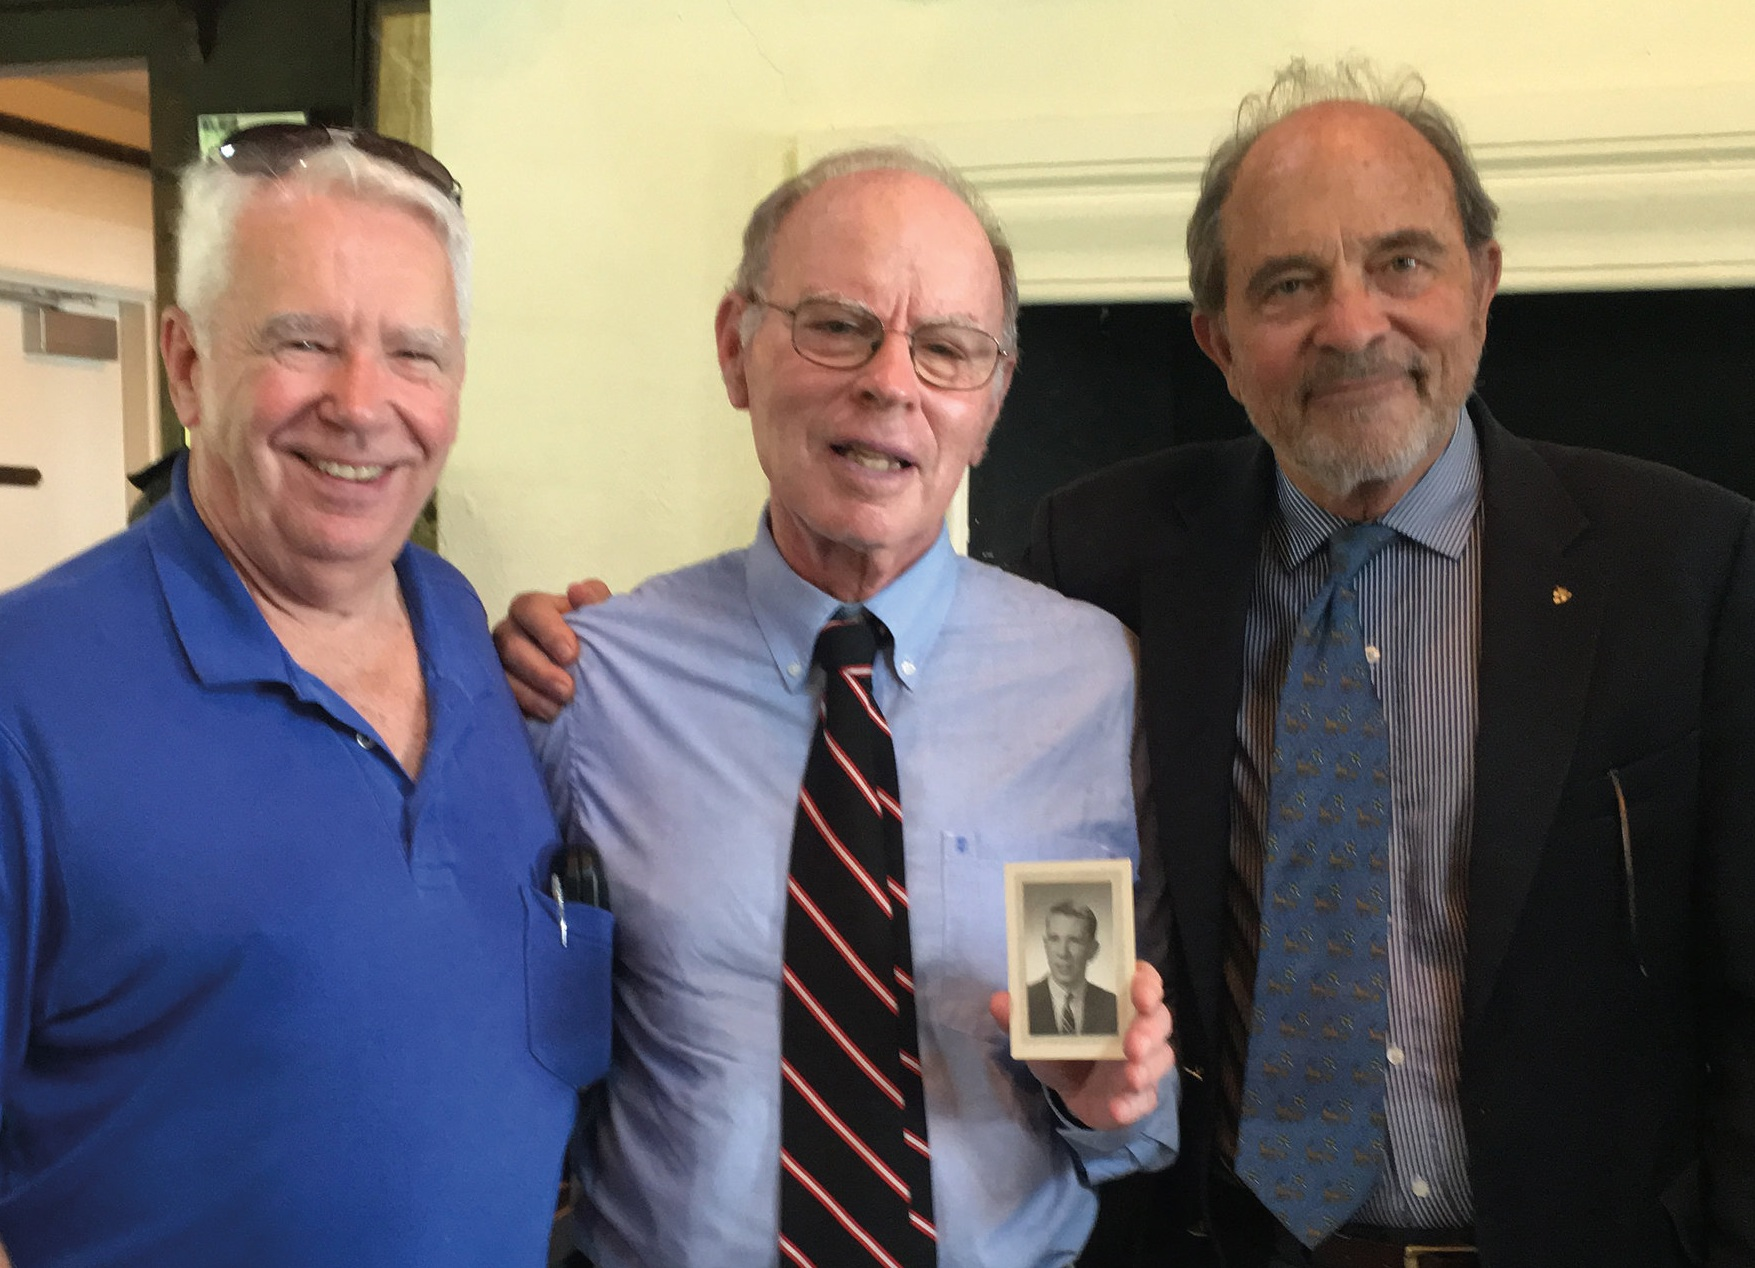 (L. to r.) Bill Eldridge '59, Bill Matthews '61, and David Atkinson '59 at the memorial service for Jimmy Gibson '59.